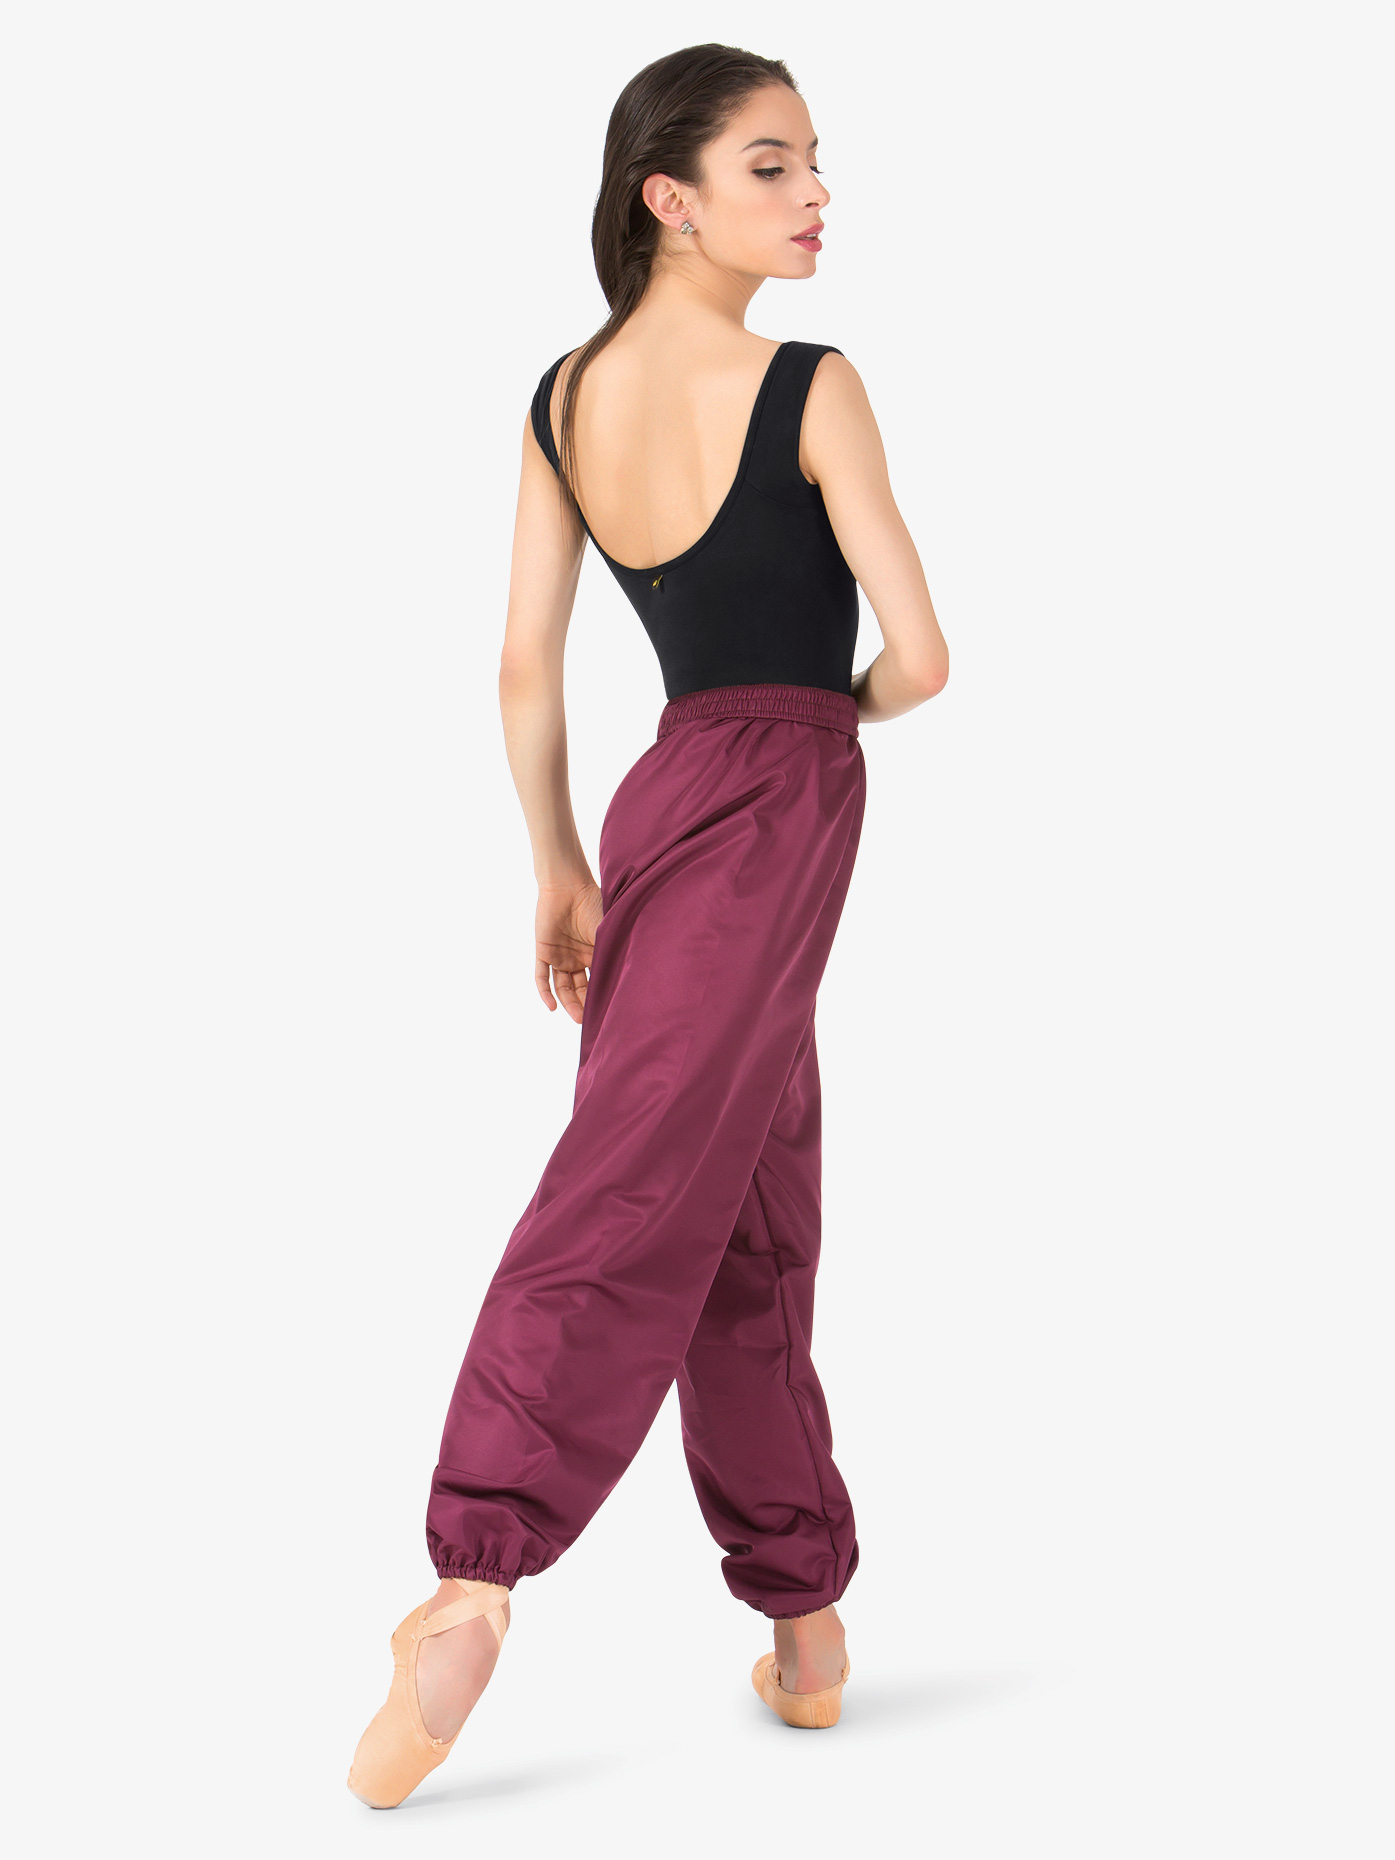 Gaynor Minden Womens Microtech Warm-up Dance Pants AW122